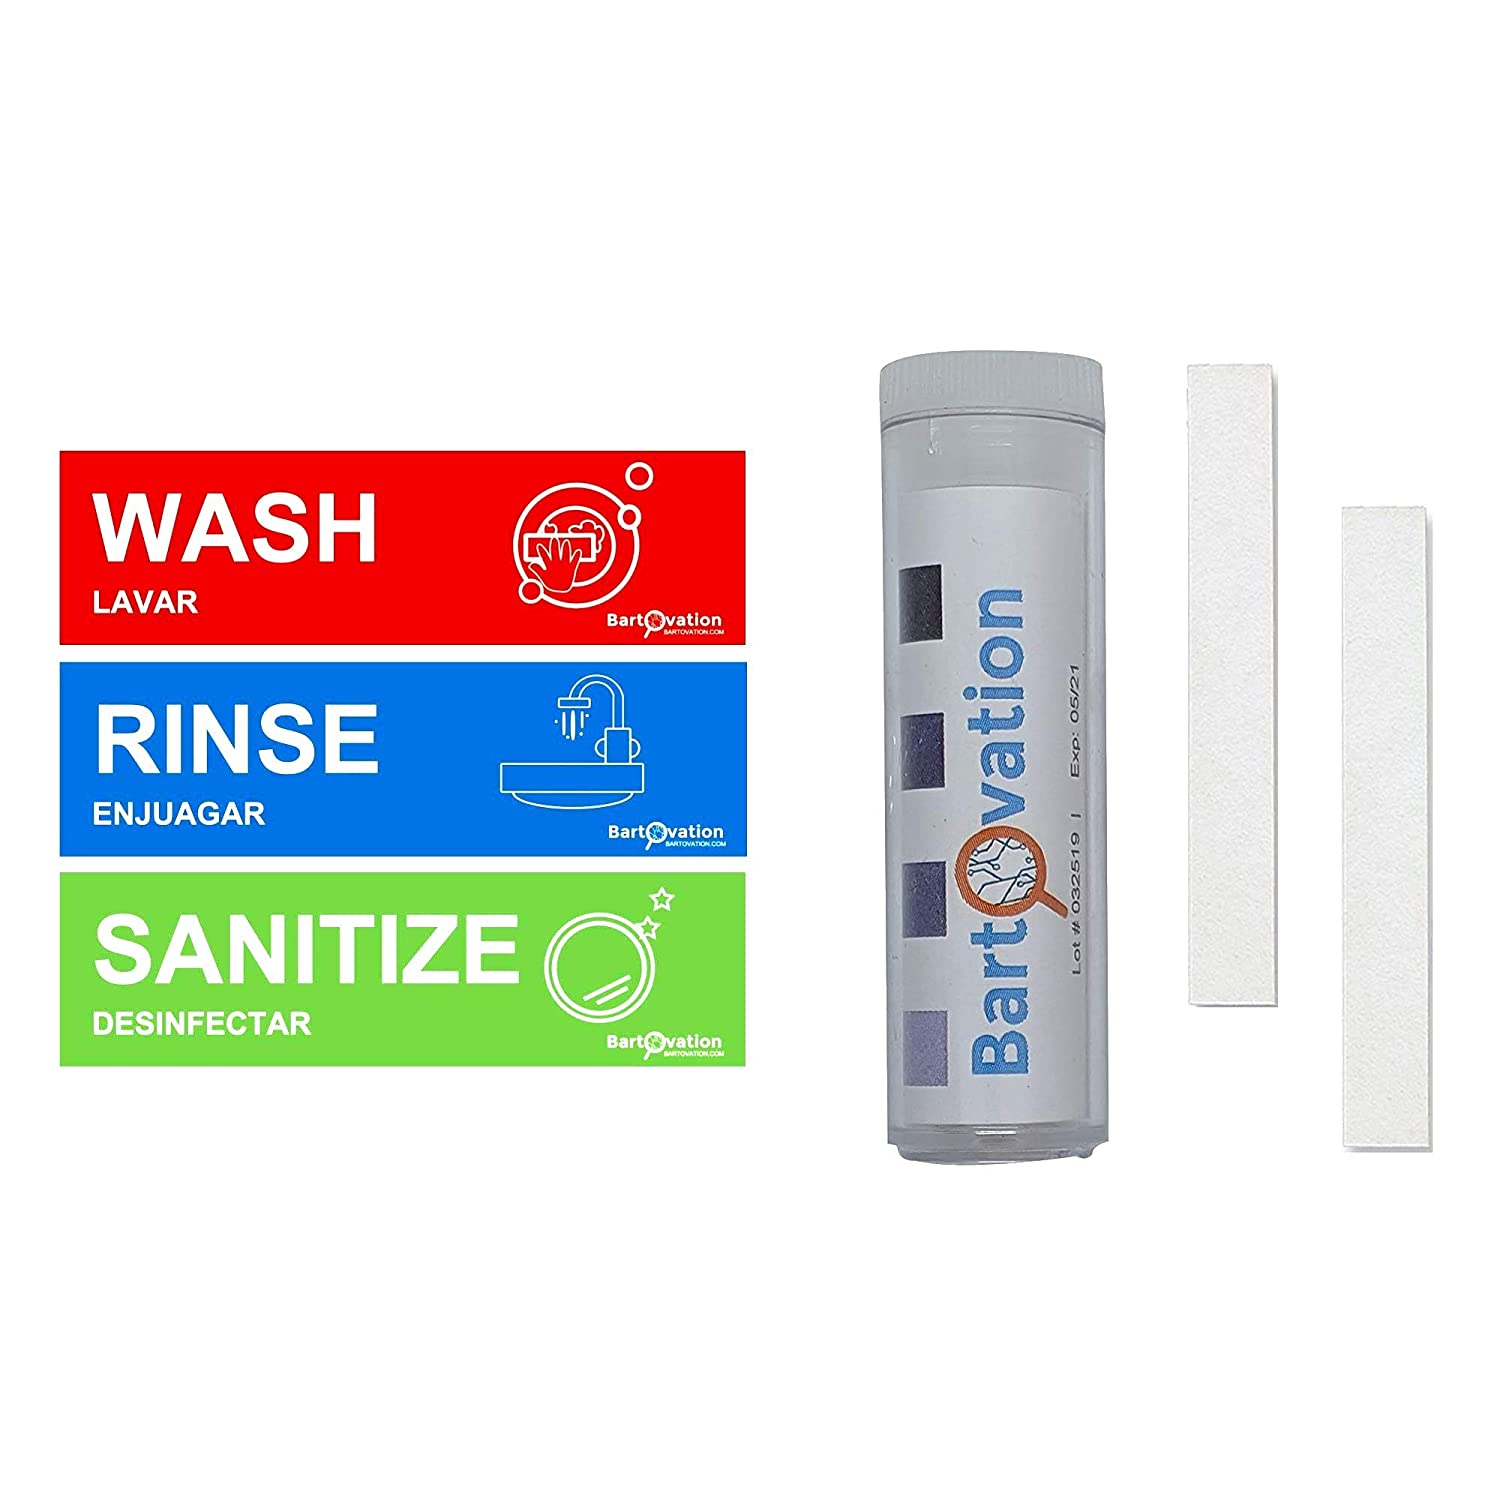 Chlorine Testing Strips with Rinse Wash Sanitize Heavy Duty Vinyl Labels for Food Service Compliance